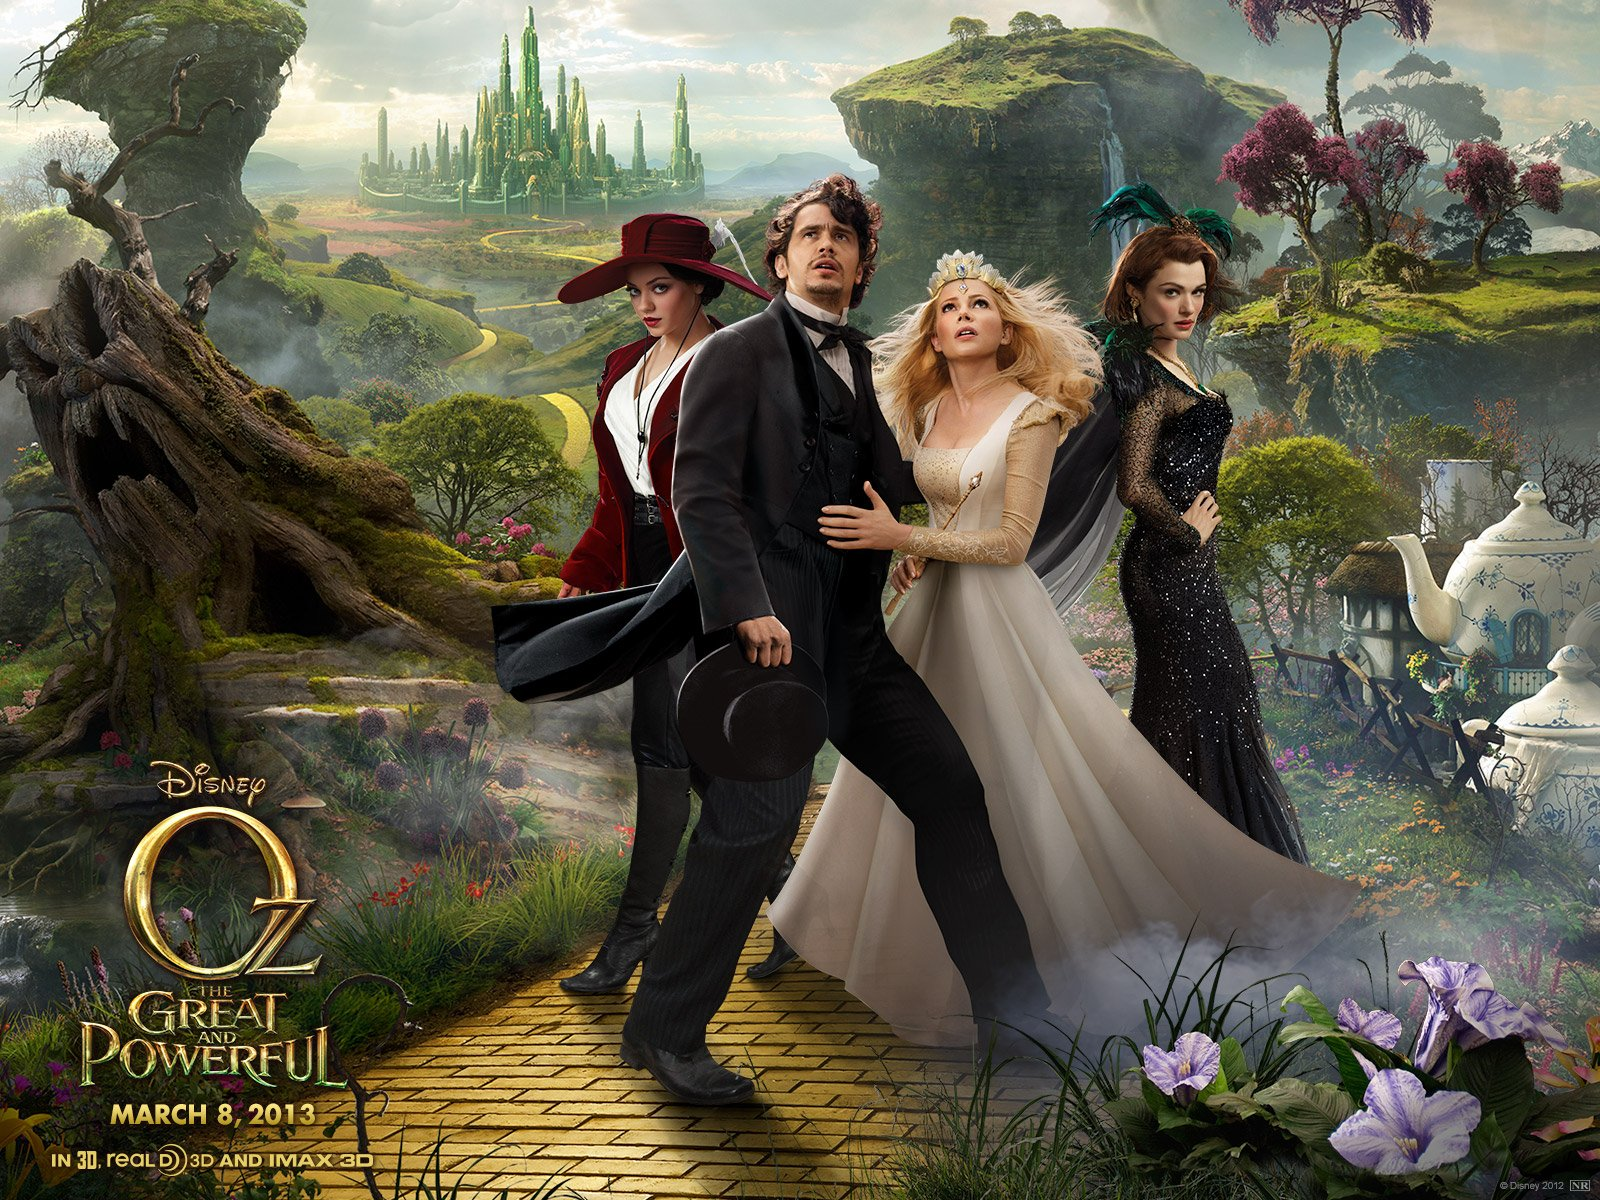 Oz the great and powerful is a prequel to the wizard of oz intended to